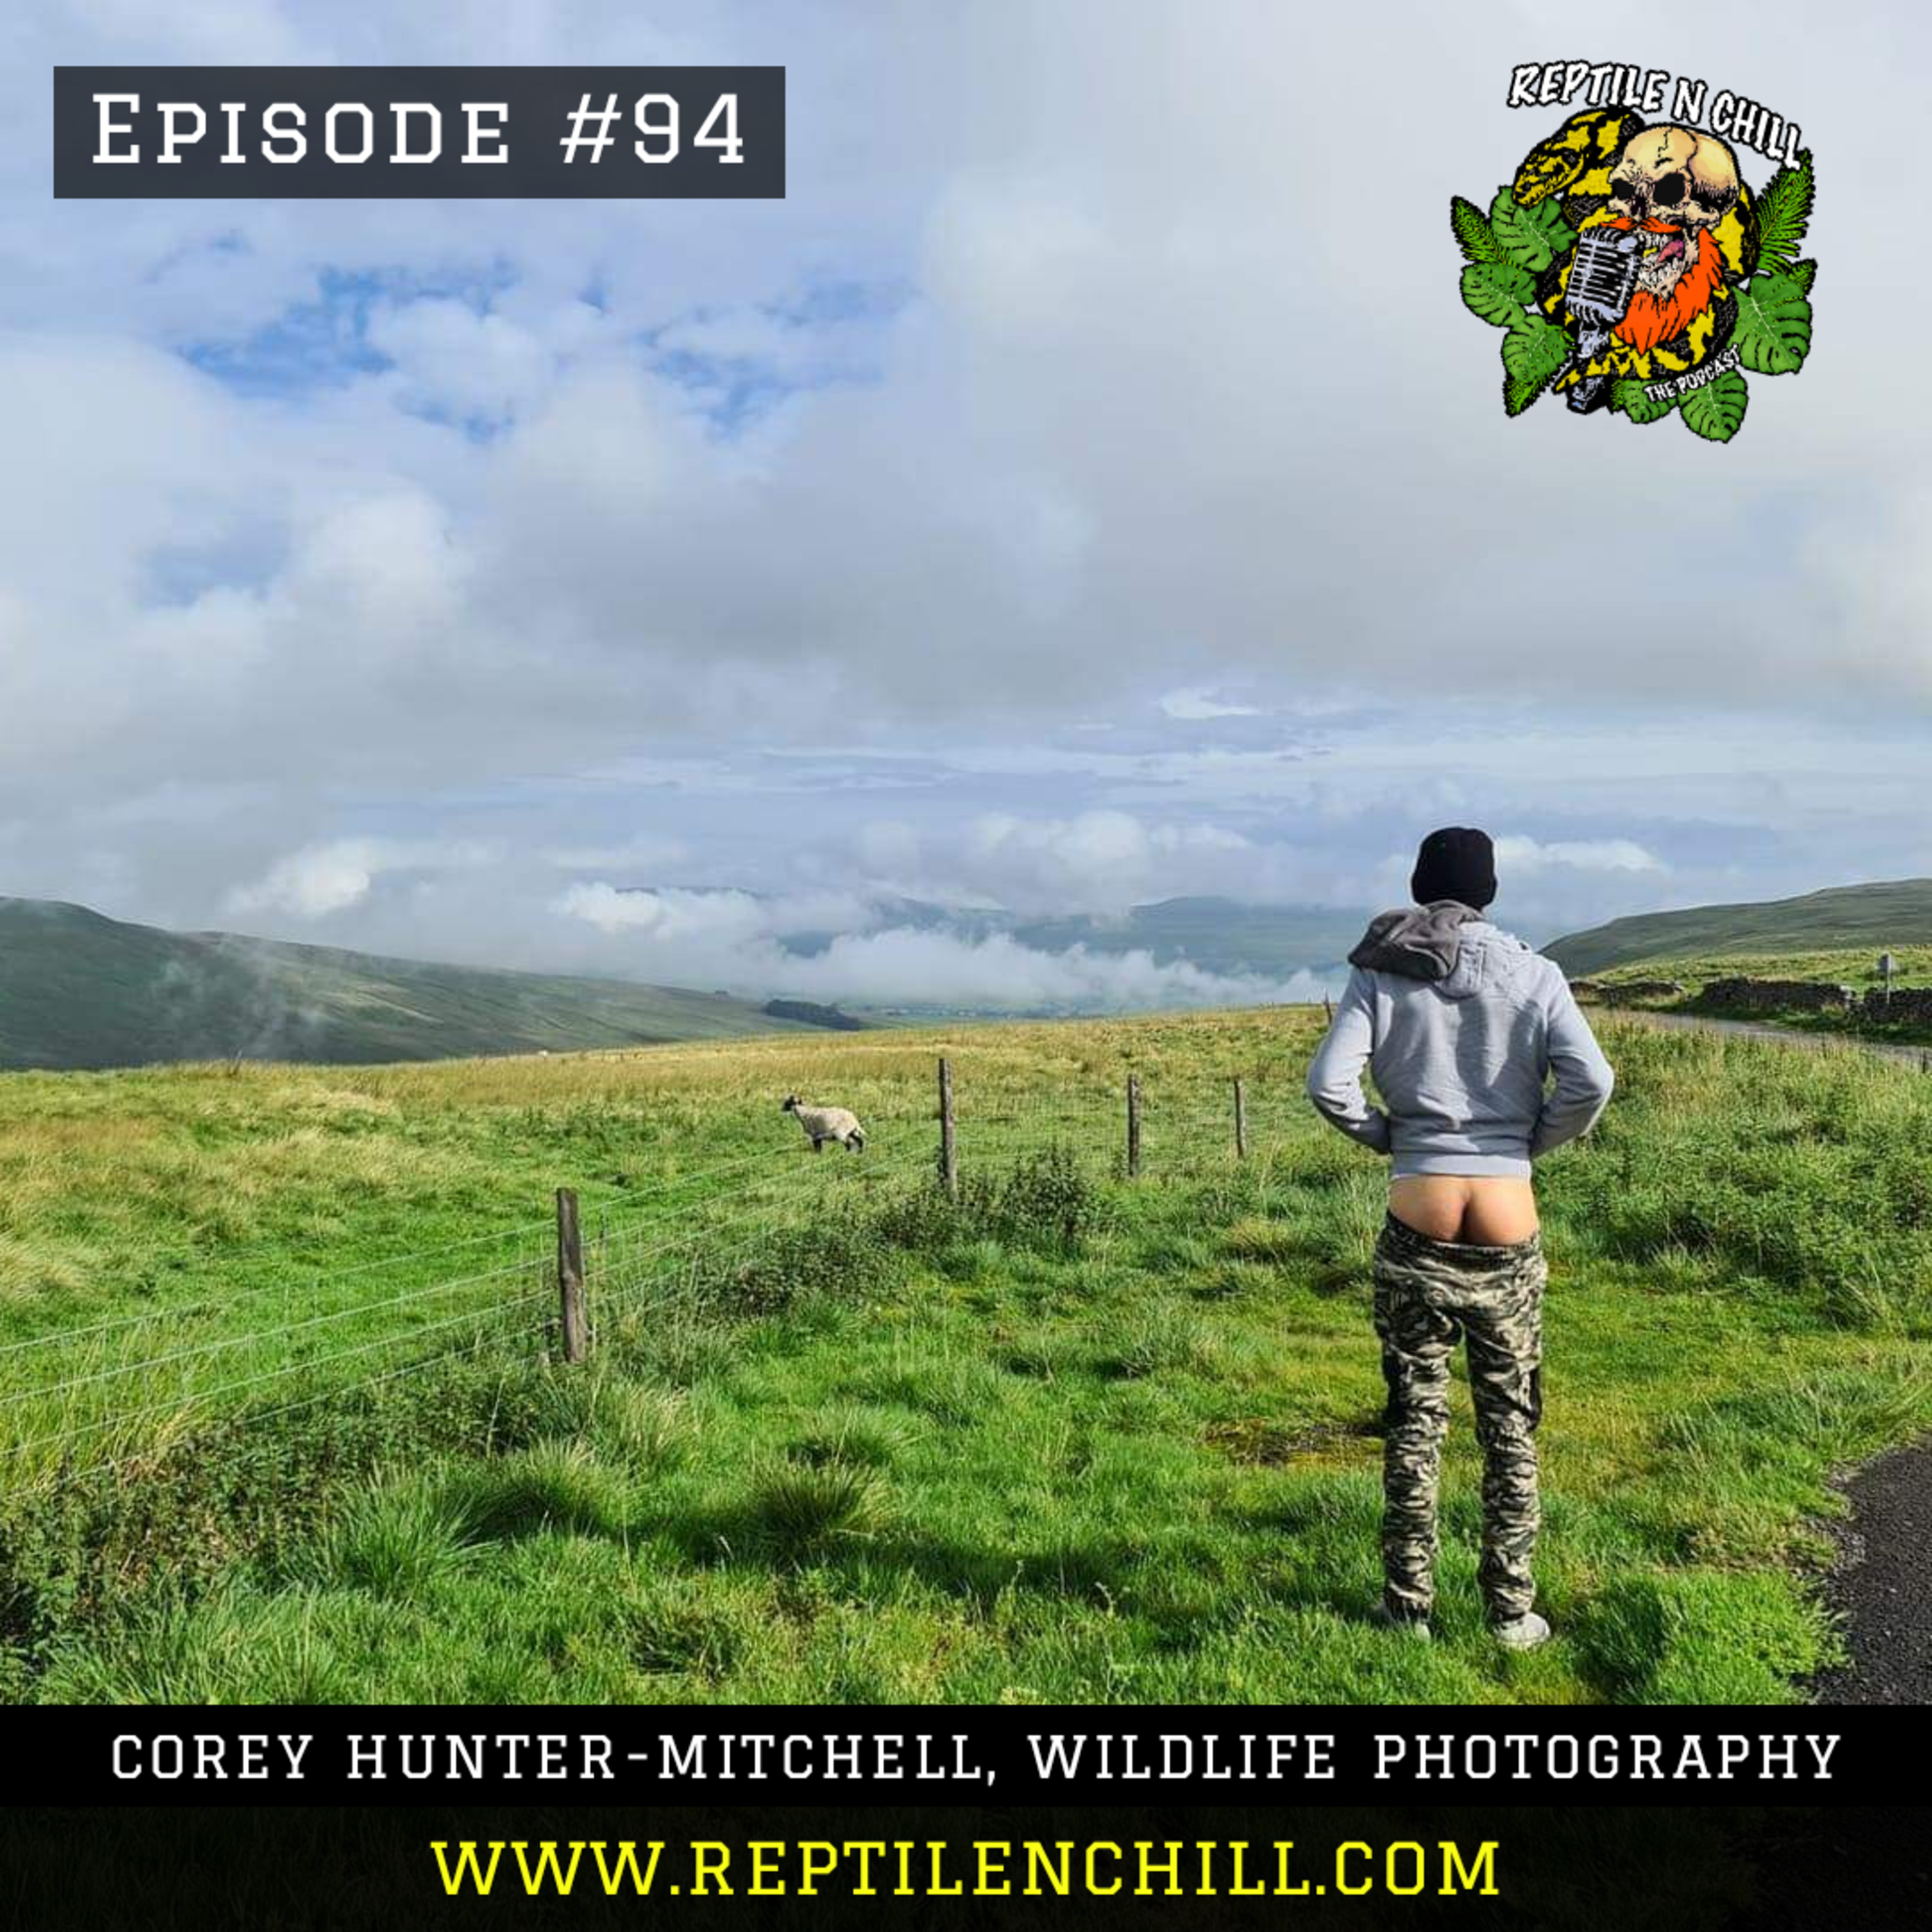 Cory Hunter-Mitchell, Wild Life Photographer- 94 Reptile n Chill